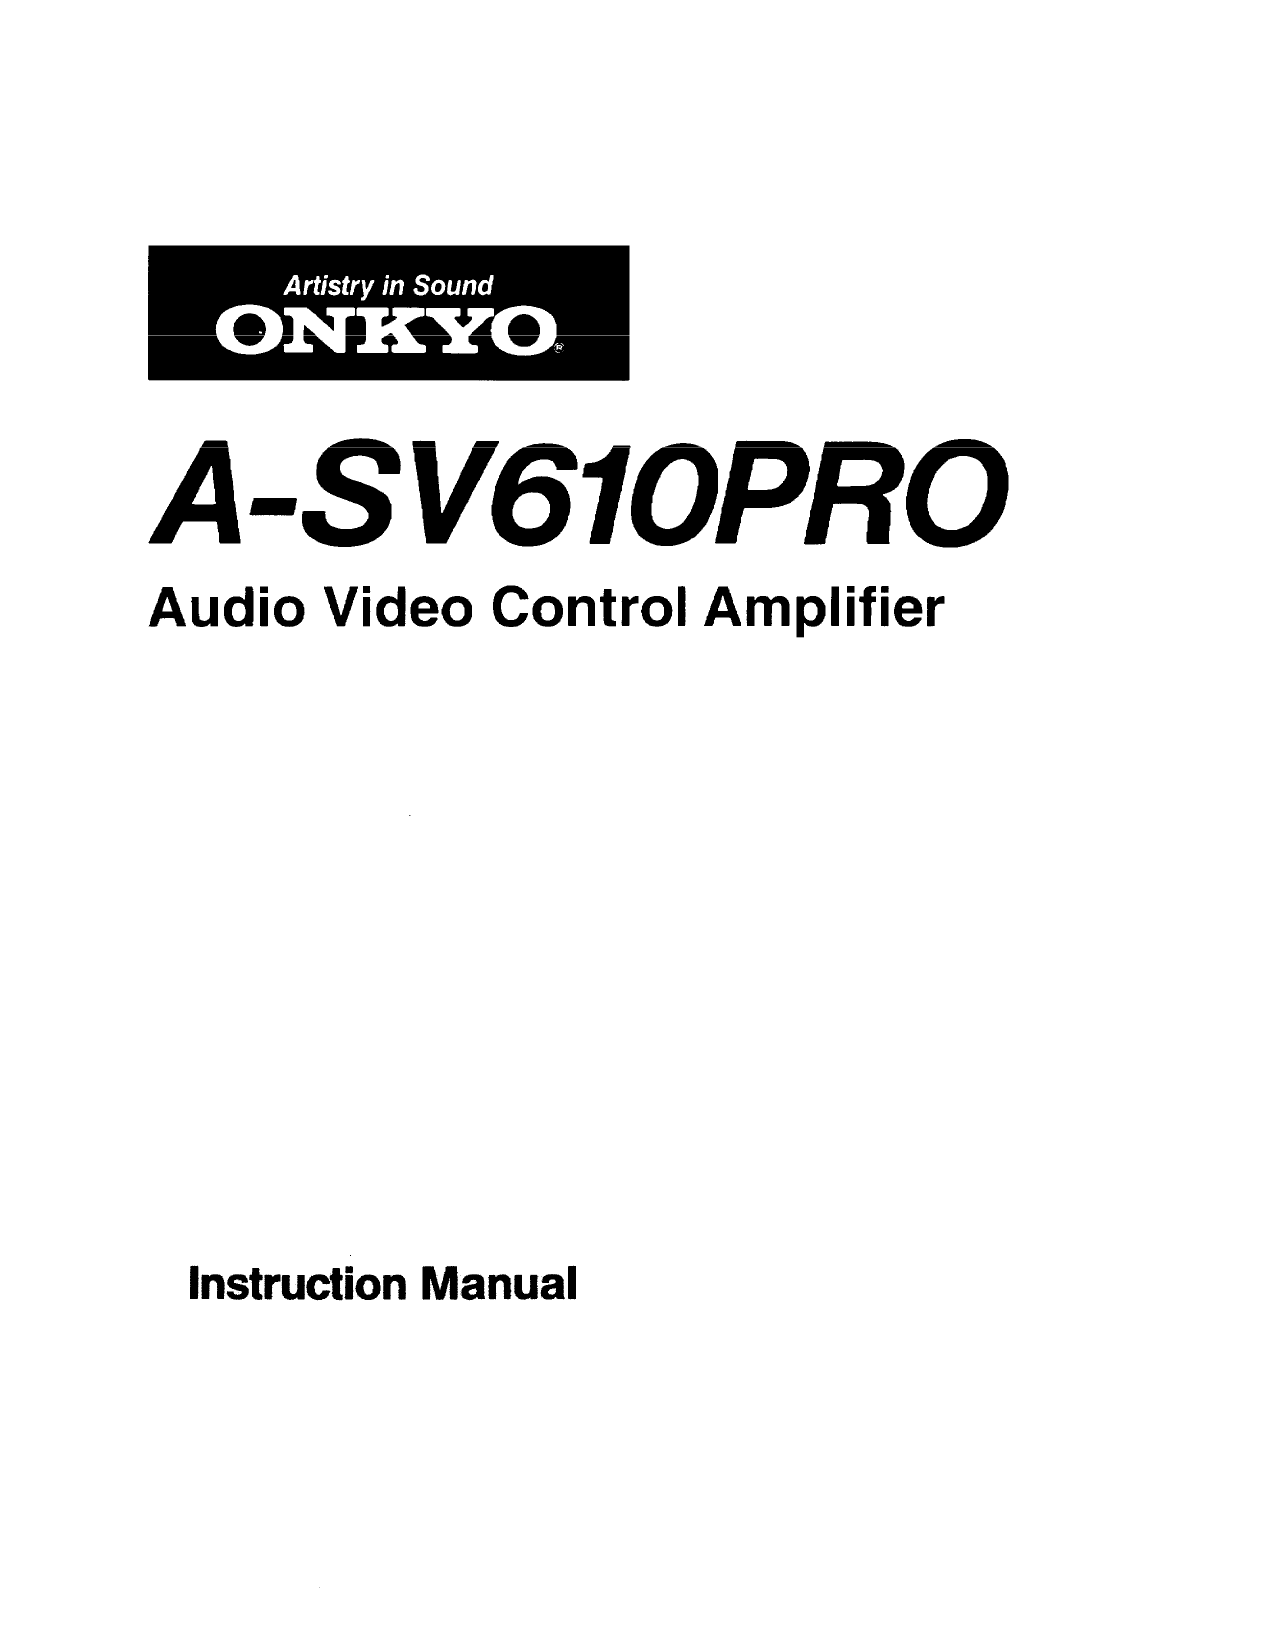 Download free pdf for Onkyo A-SV610PRO Amp manual